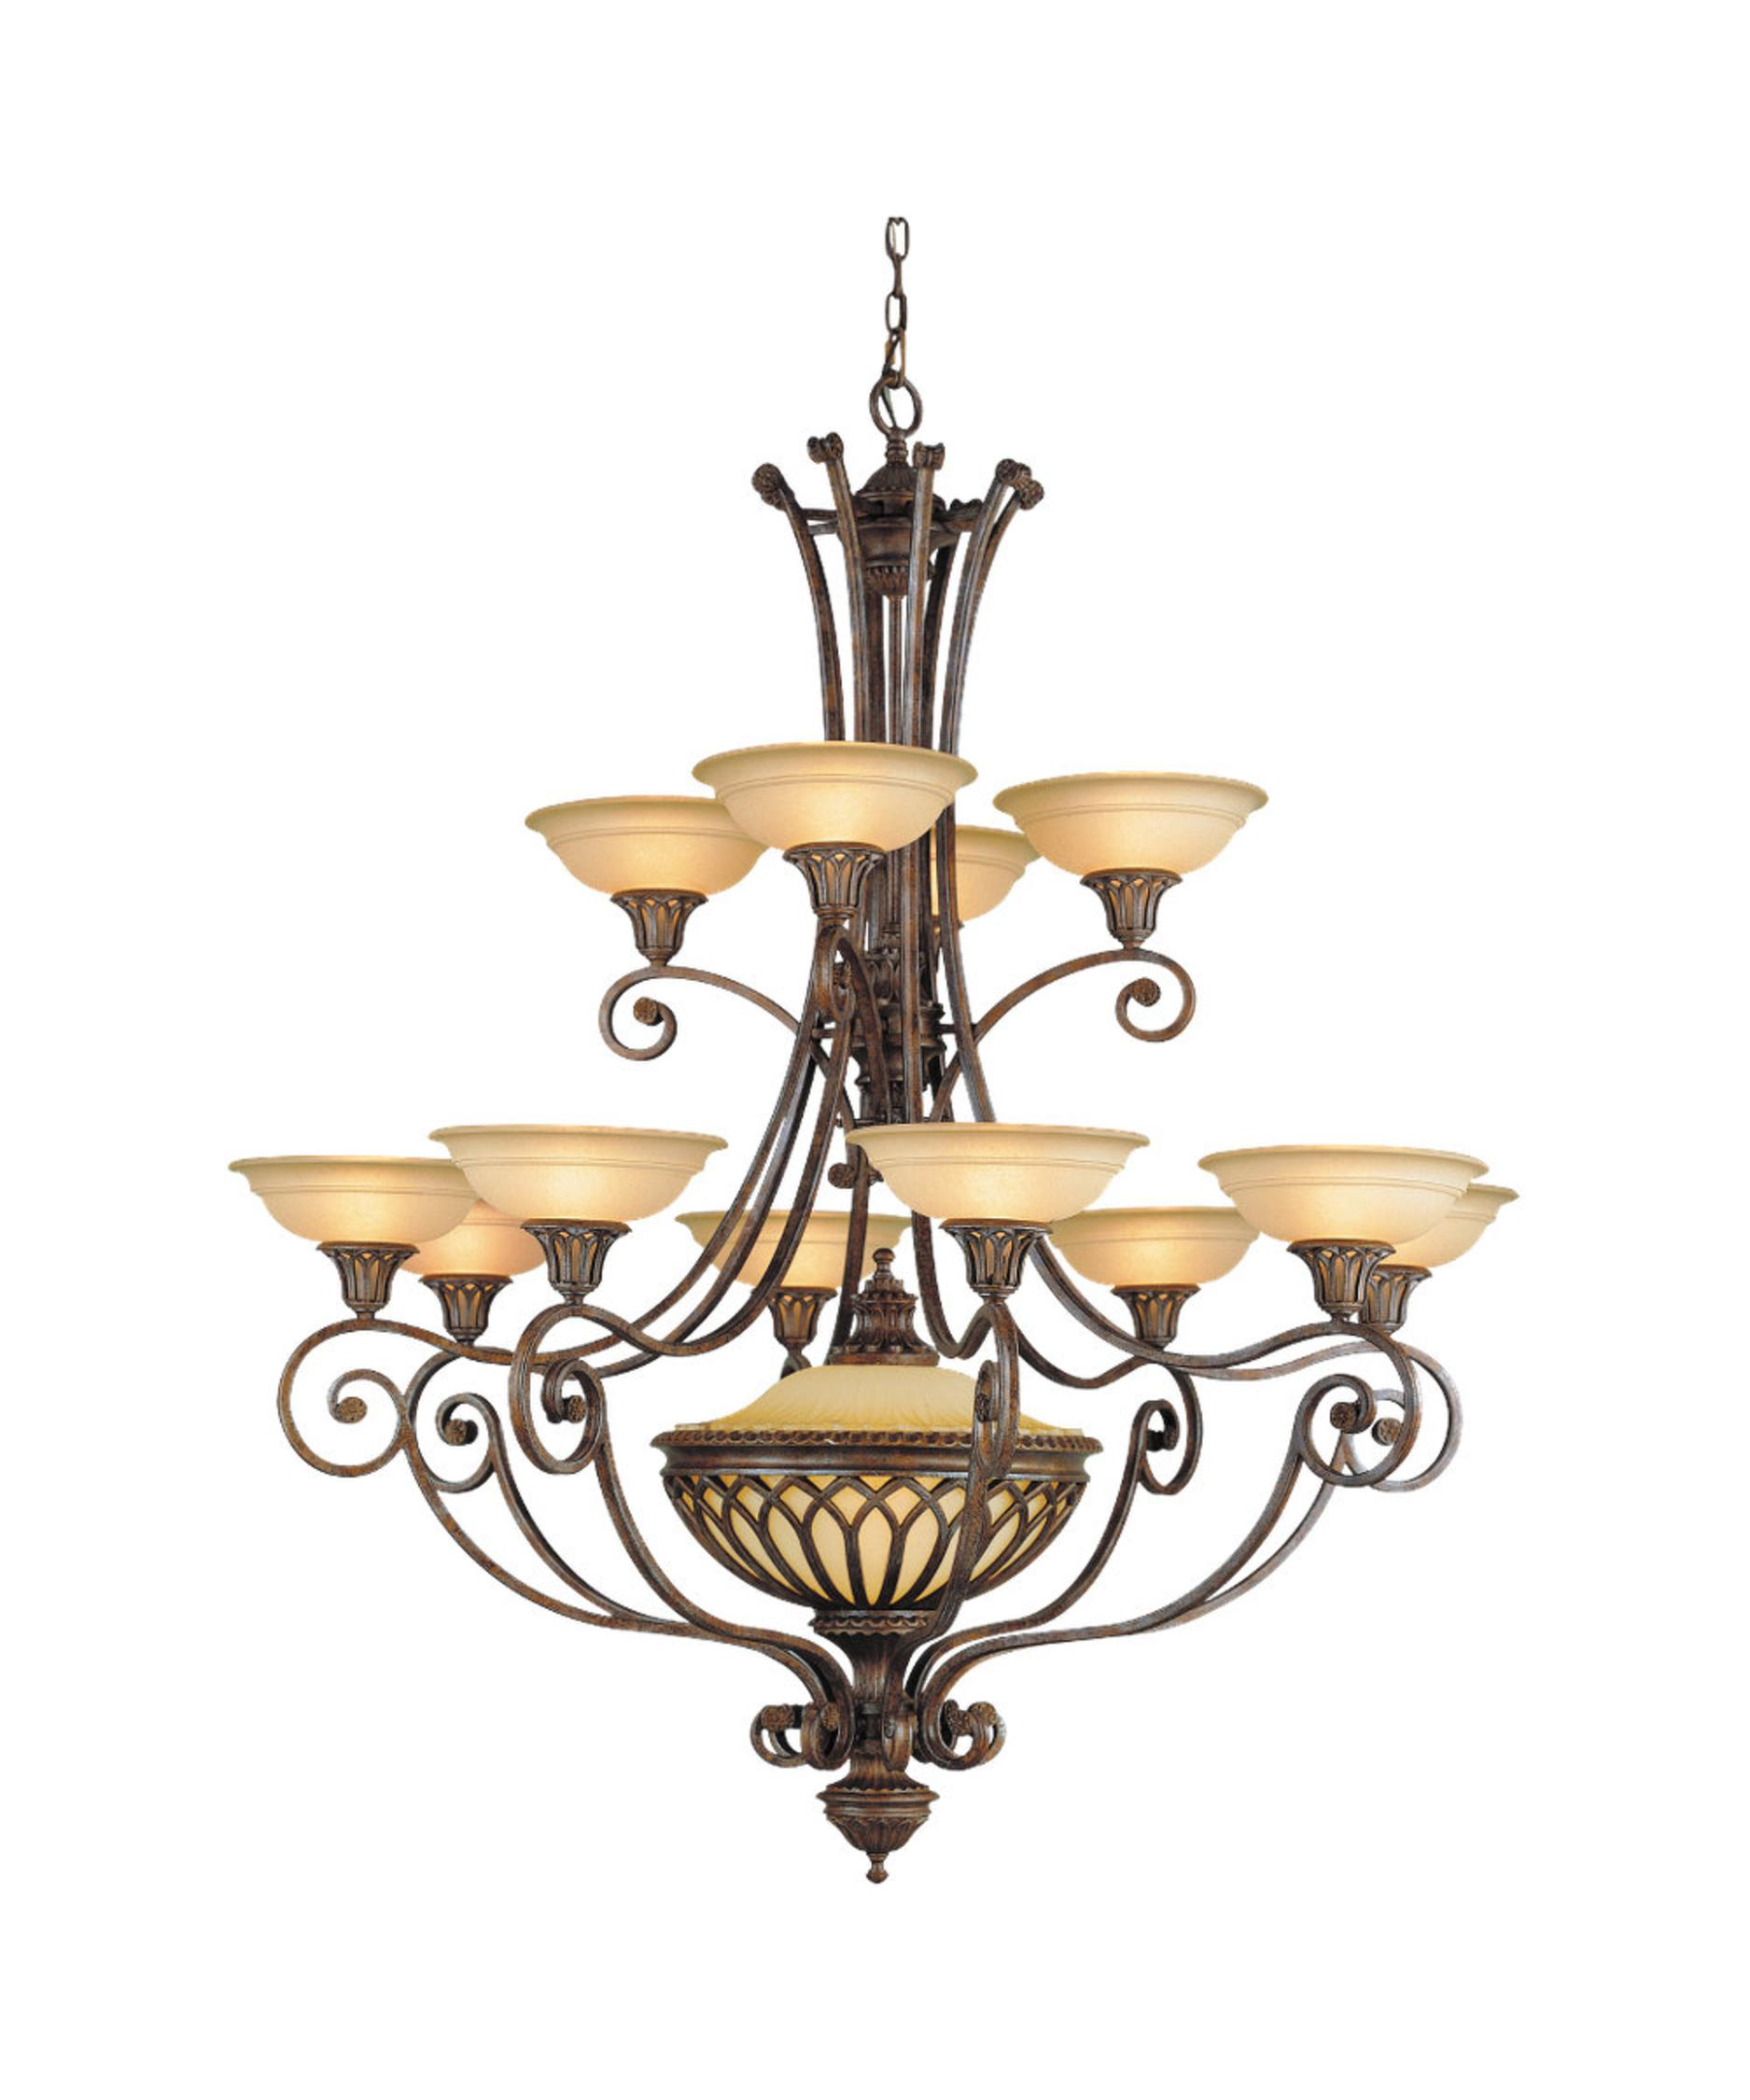 Murray Feiss Stirling Castle 47 Inch Wide 12 Light Chandelier – Murray Feiss Chandeliers